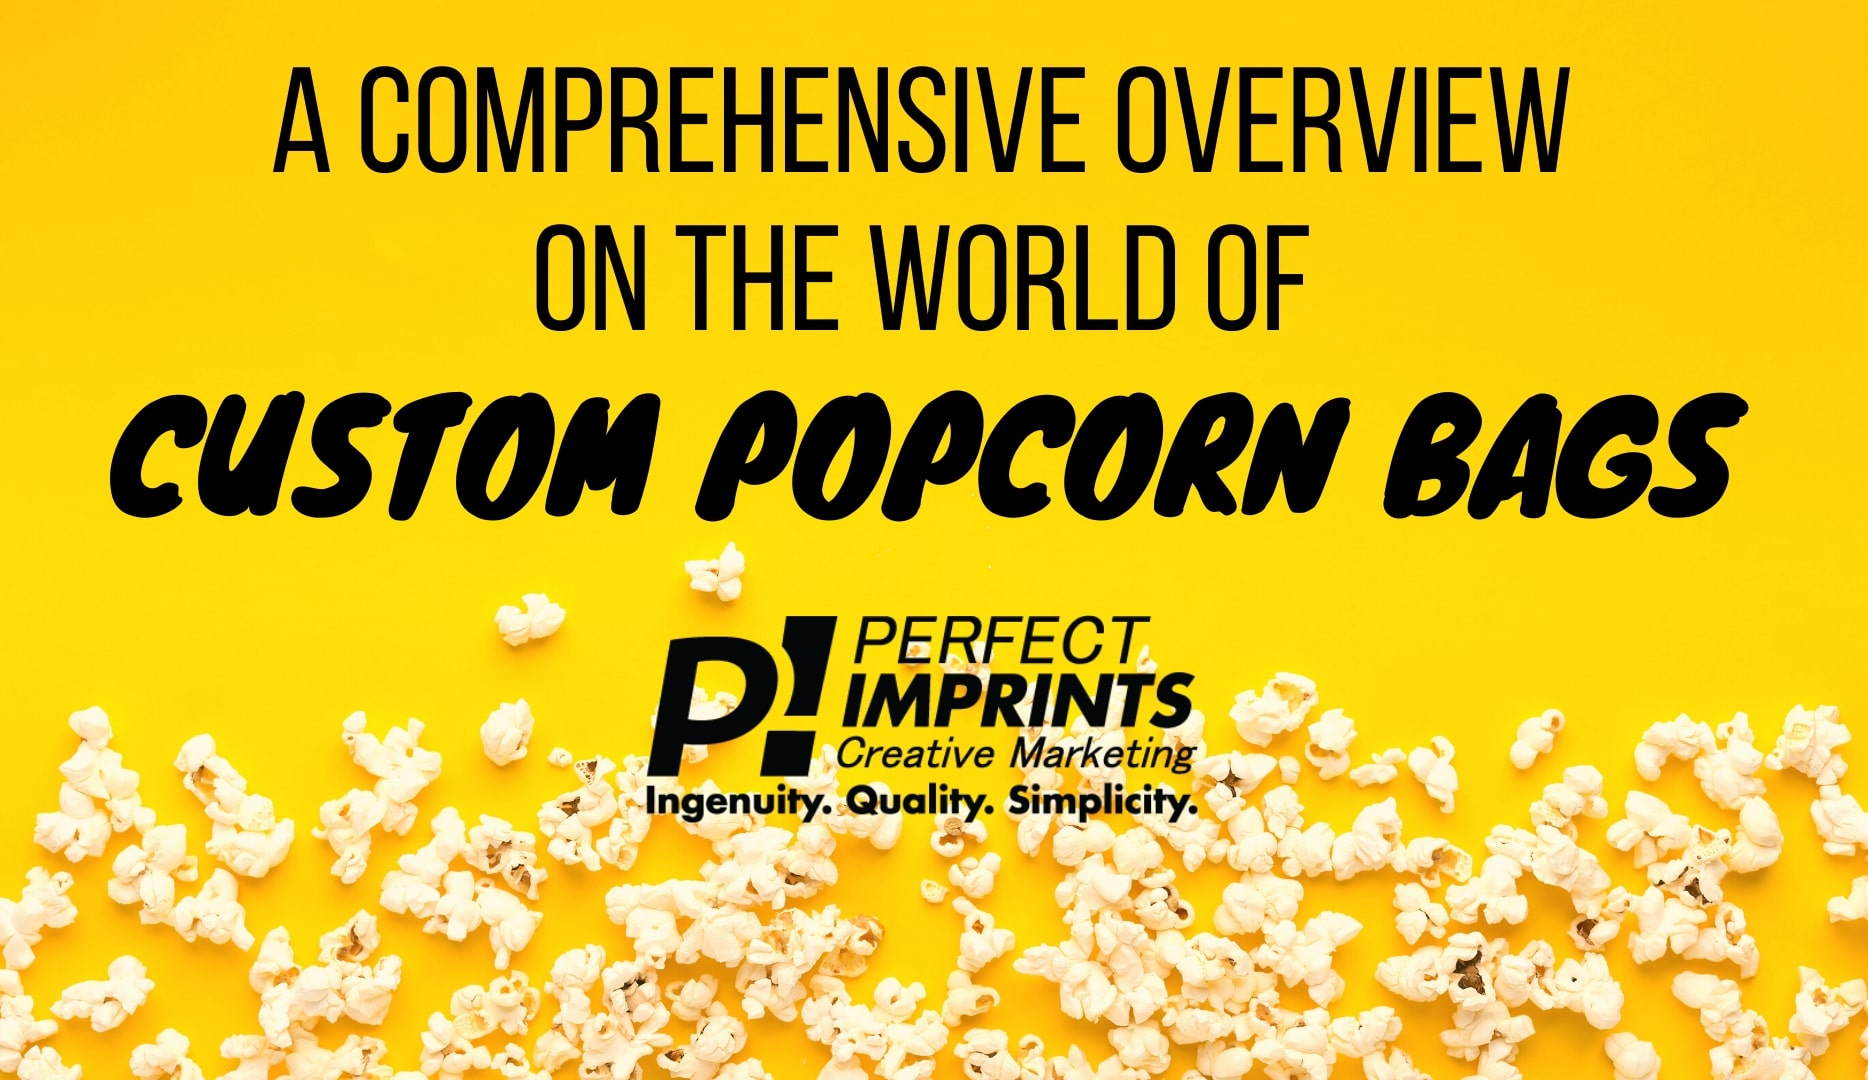 A Comprehensive Overview On The World Of Custom Popcorn Bags